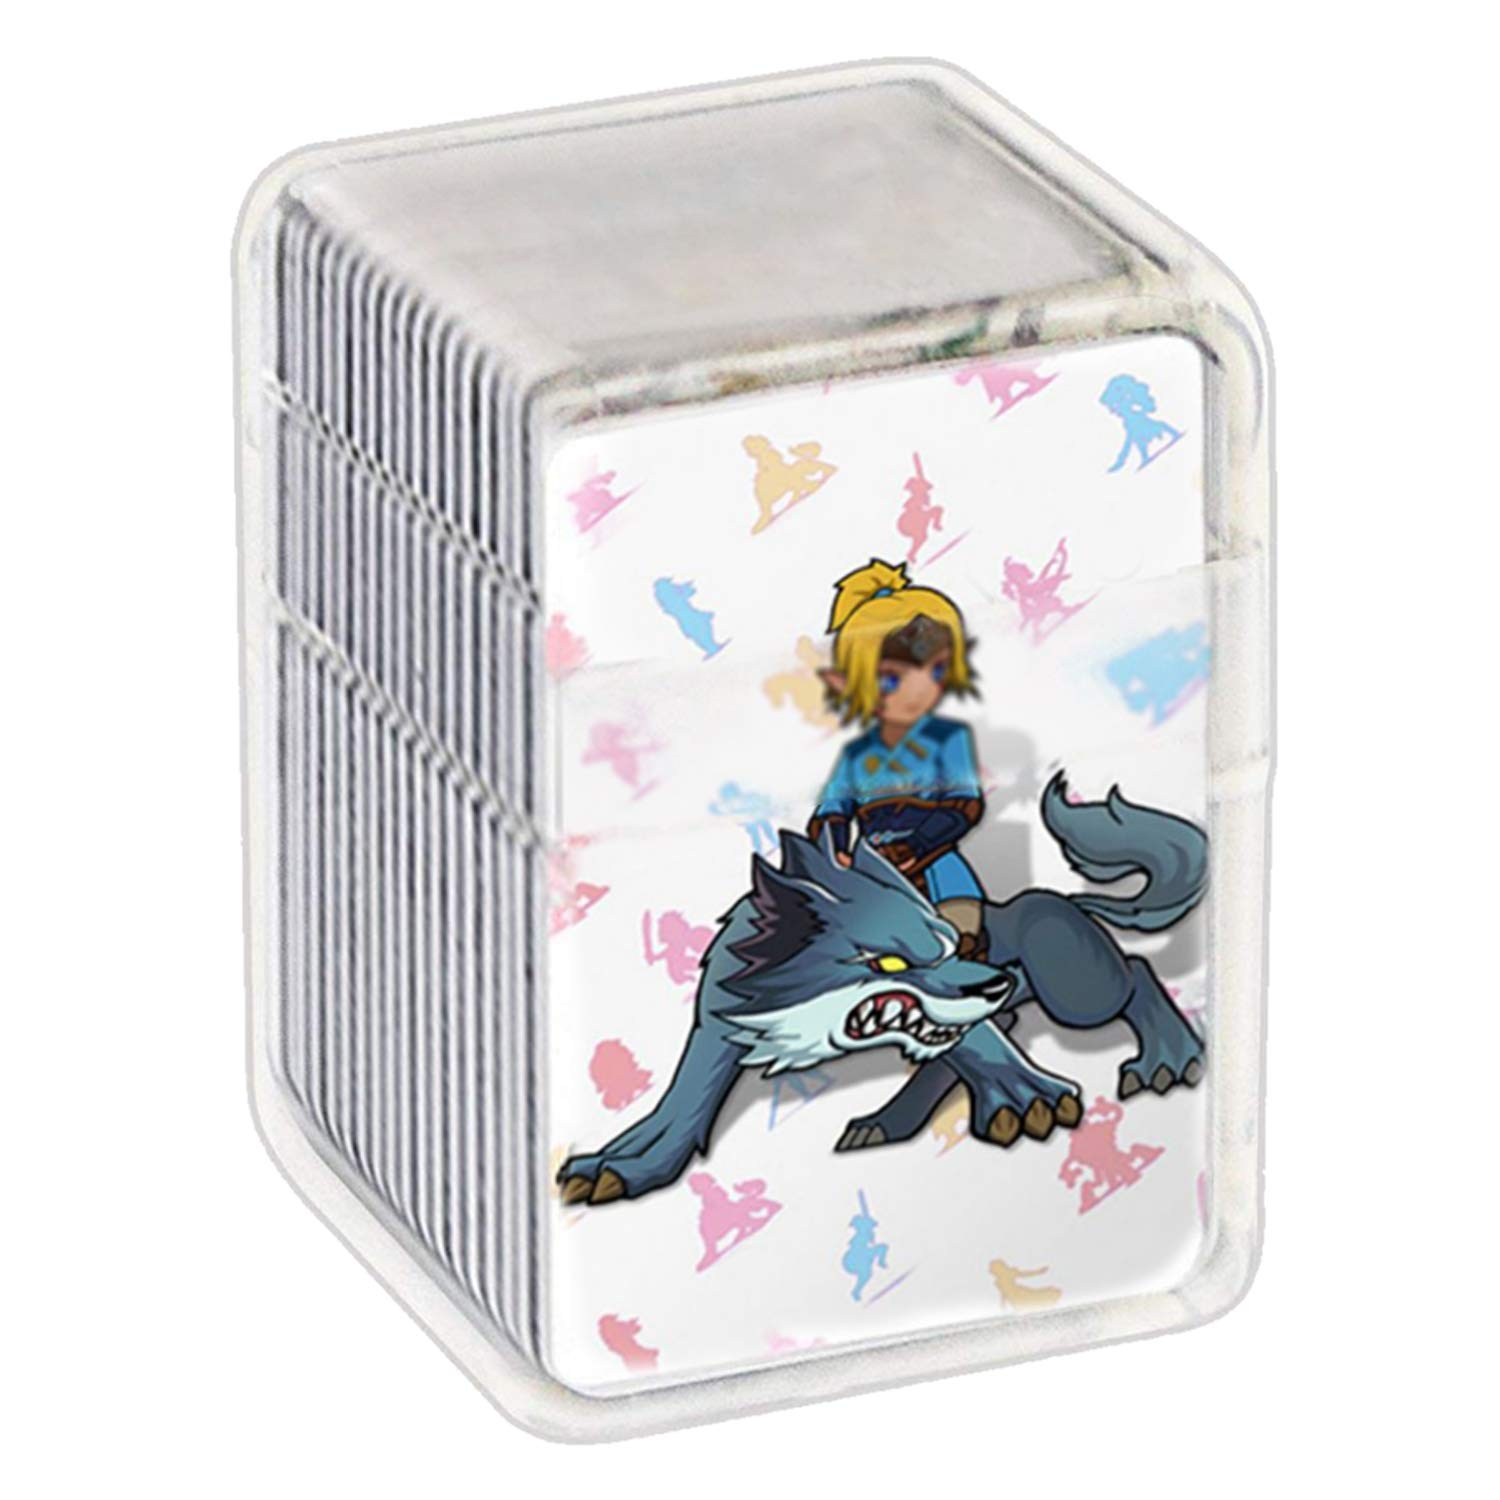 GURLLEU Botw NFC Tag Game Cards for the Legend of Zelda Breath of the Wild Compatible with Switch/Wii U - 23pcs Mini Cards with Crystal Case